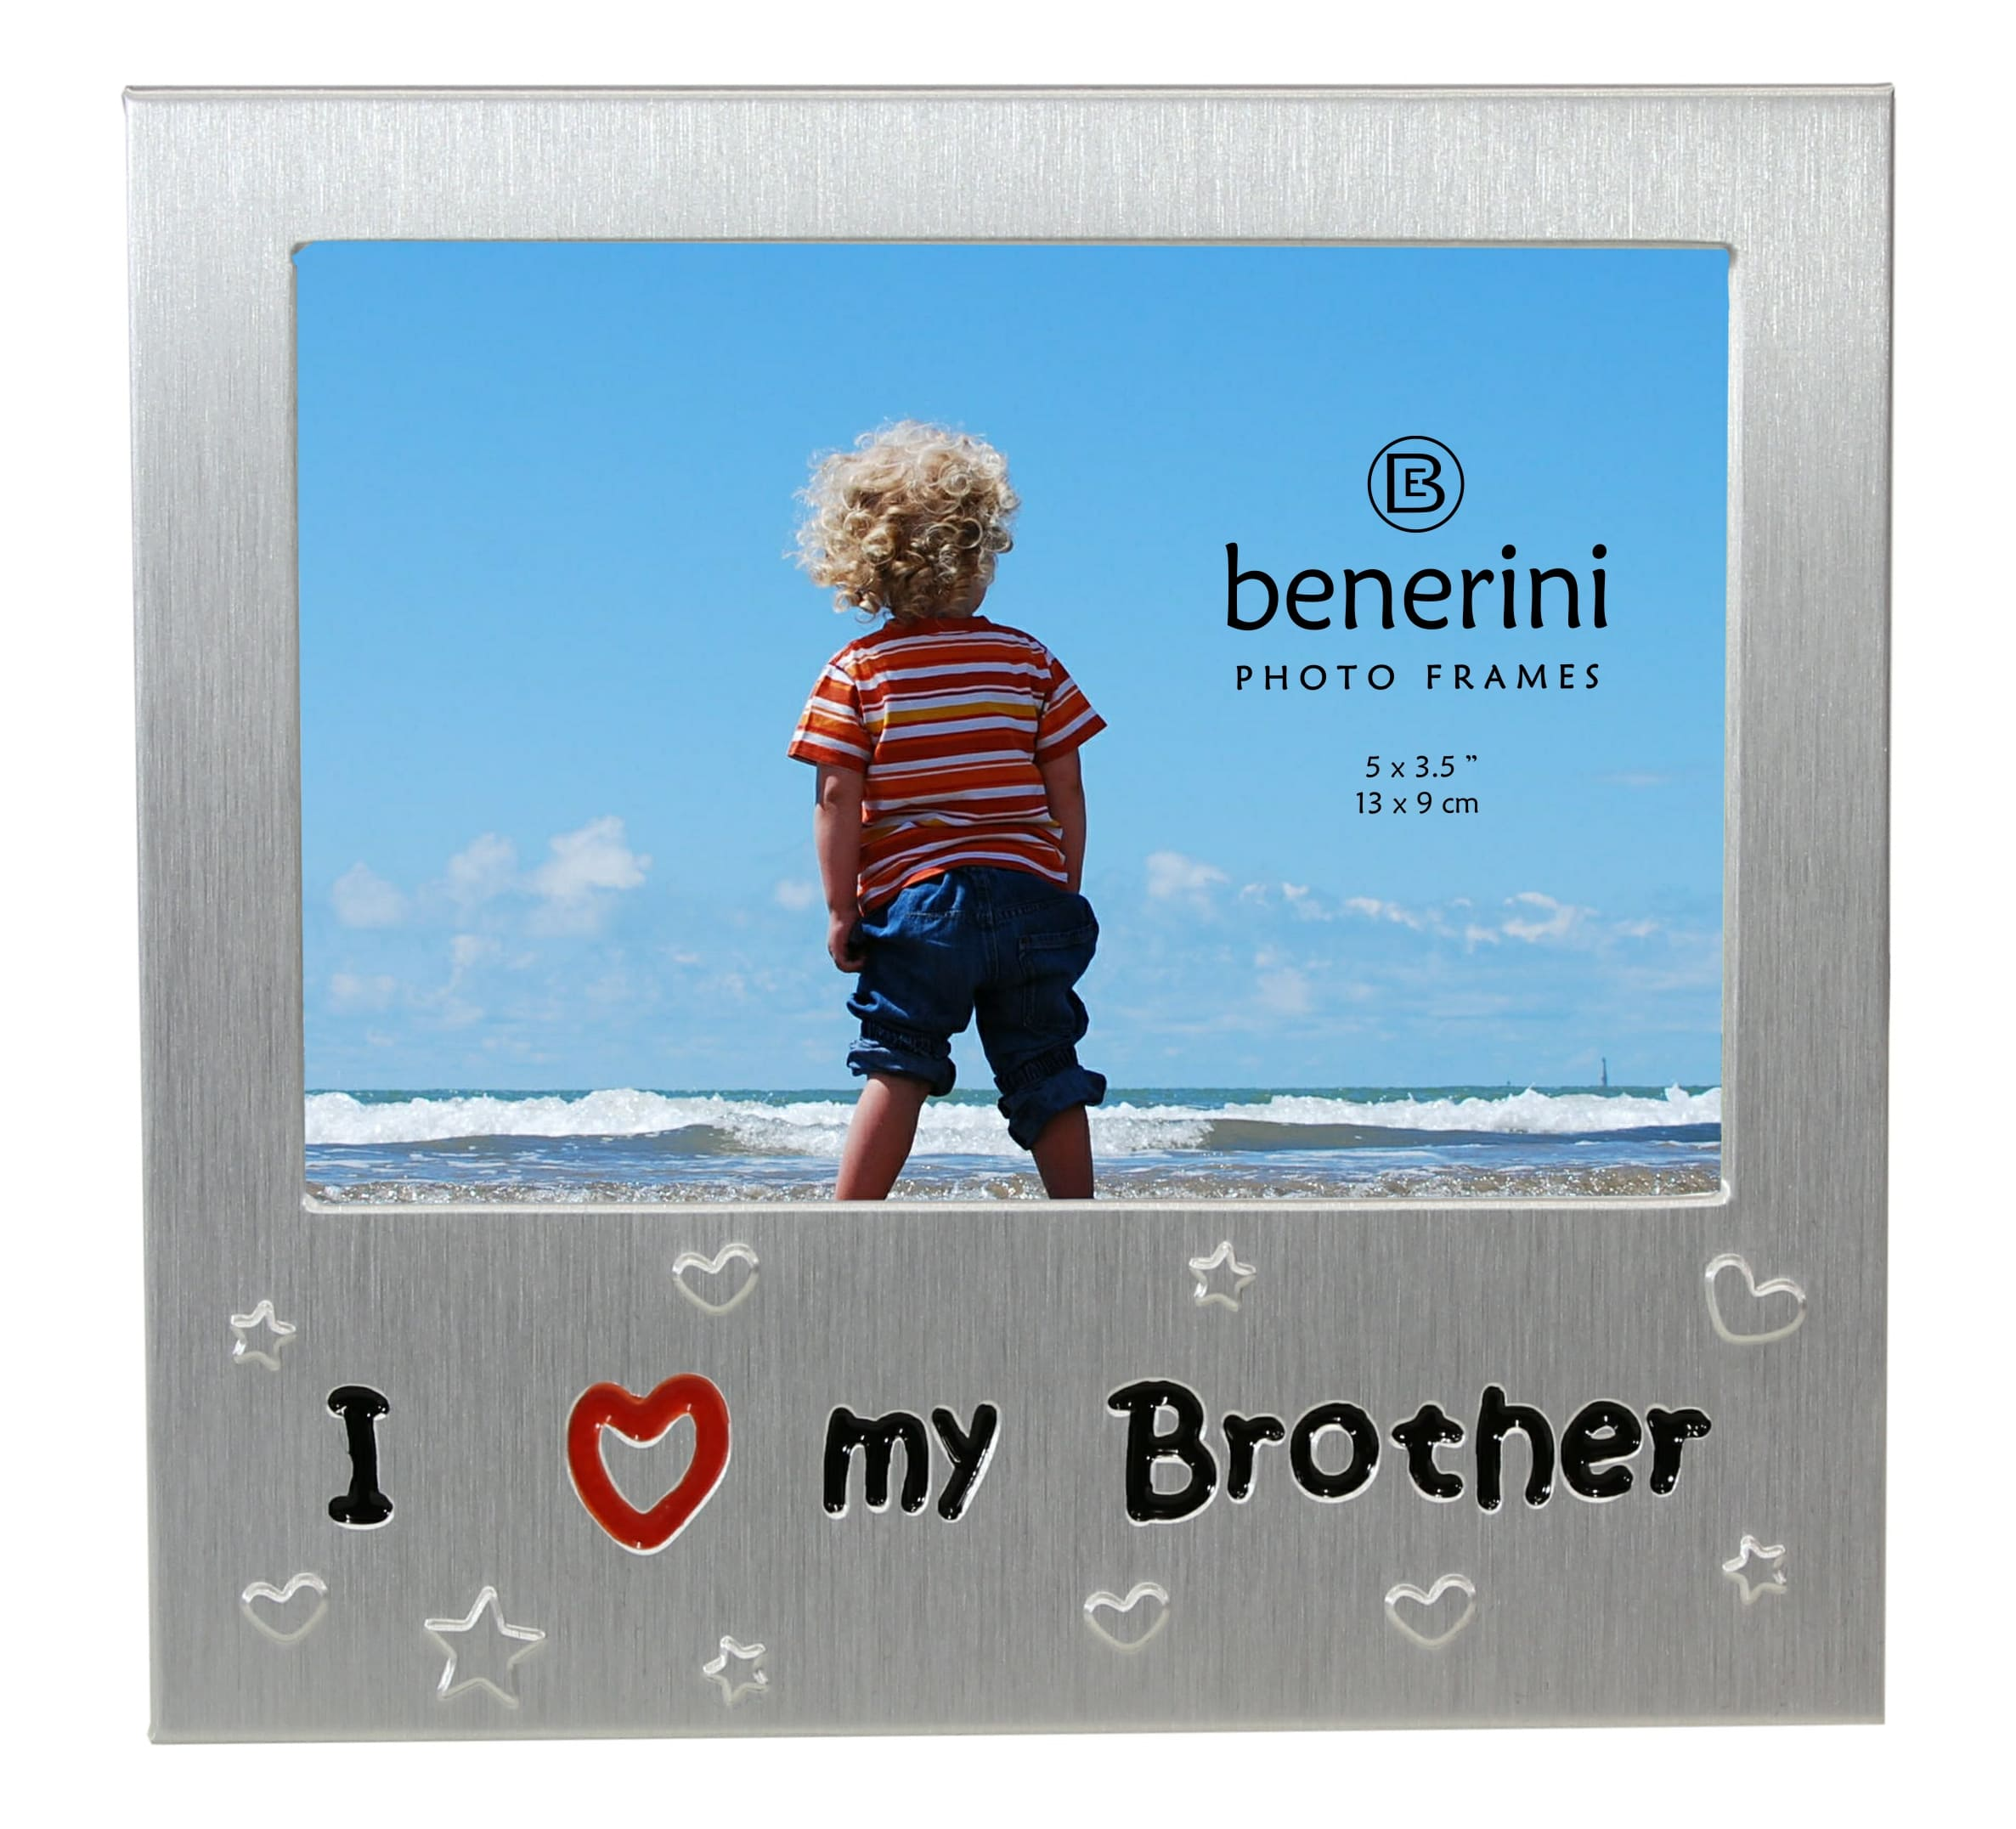 Christmas Gifts For Brother.Details About I Love My Brother Photo Picture Frame Gift Birthday Christmas Gifts For Him